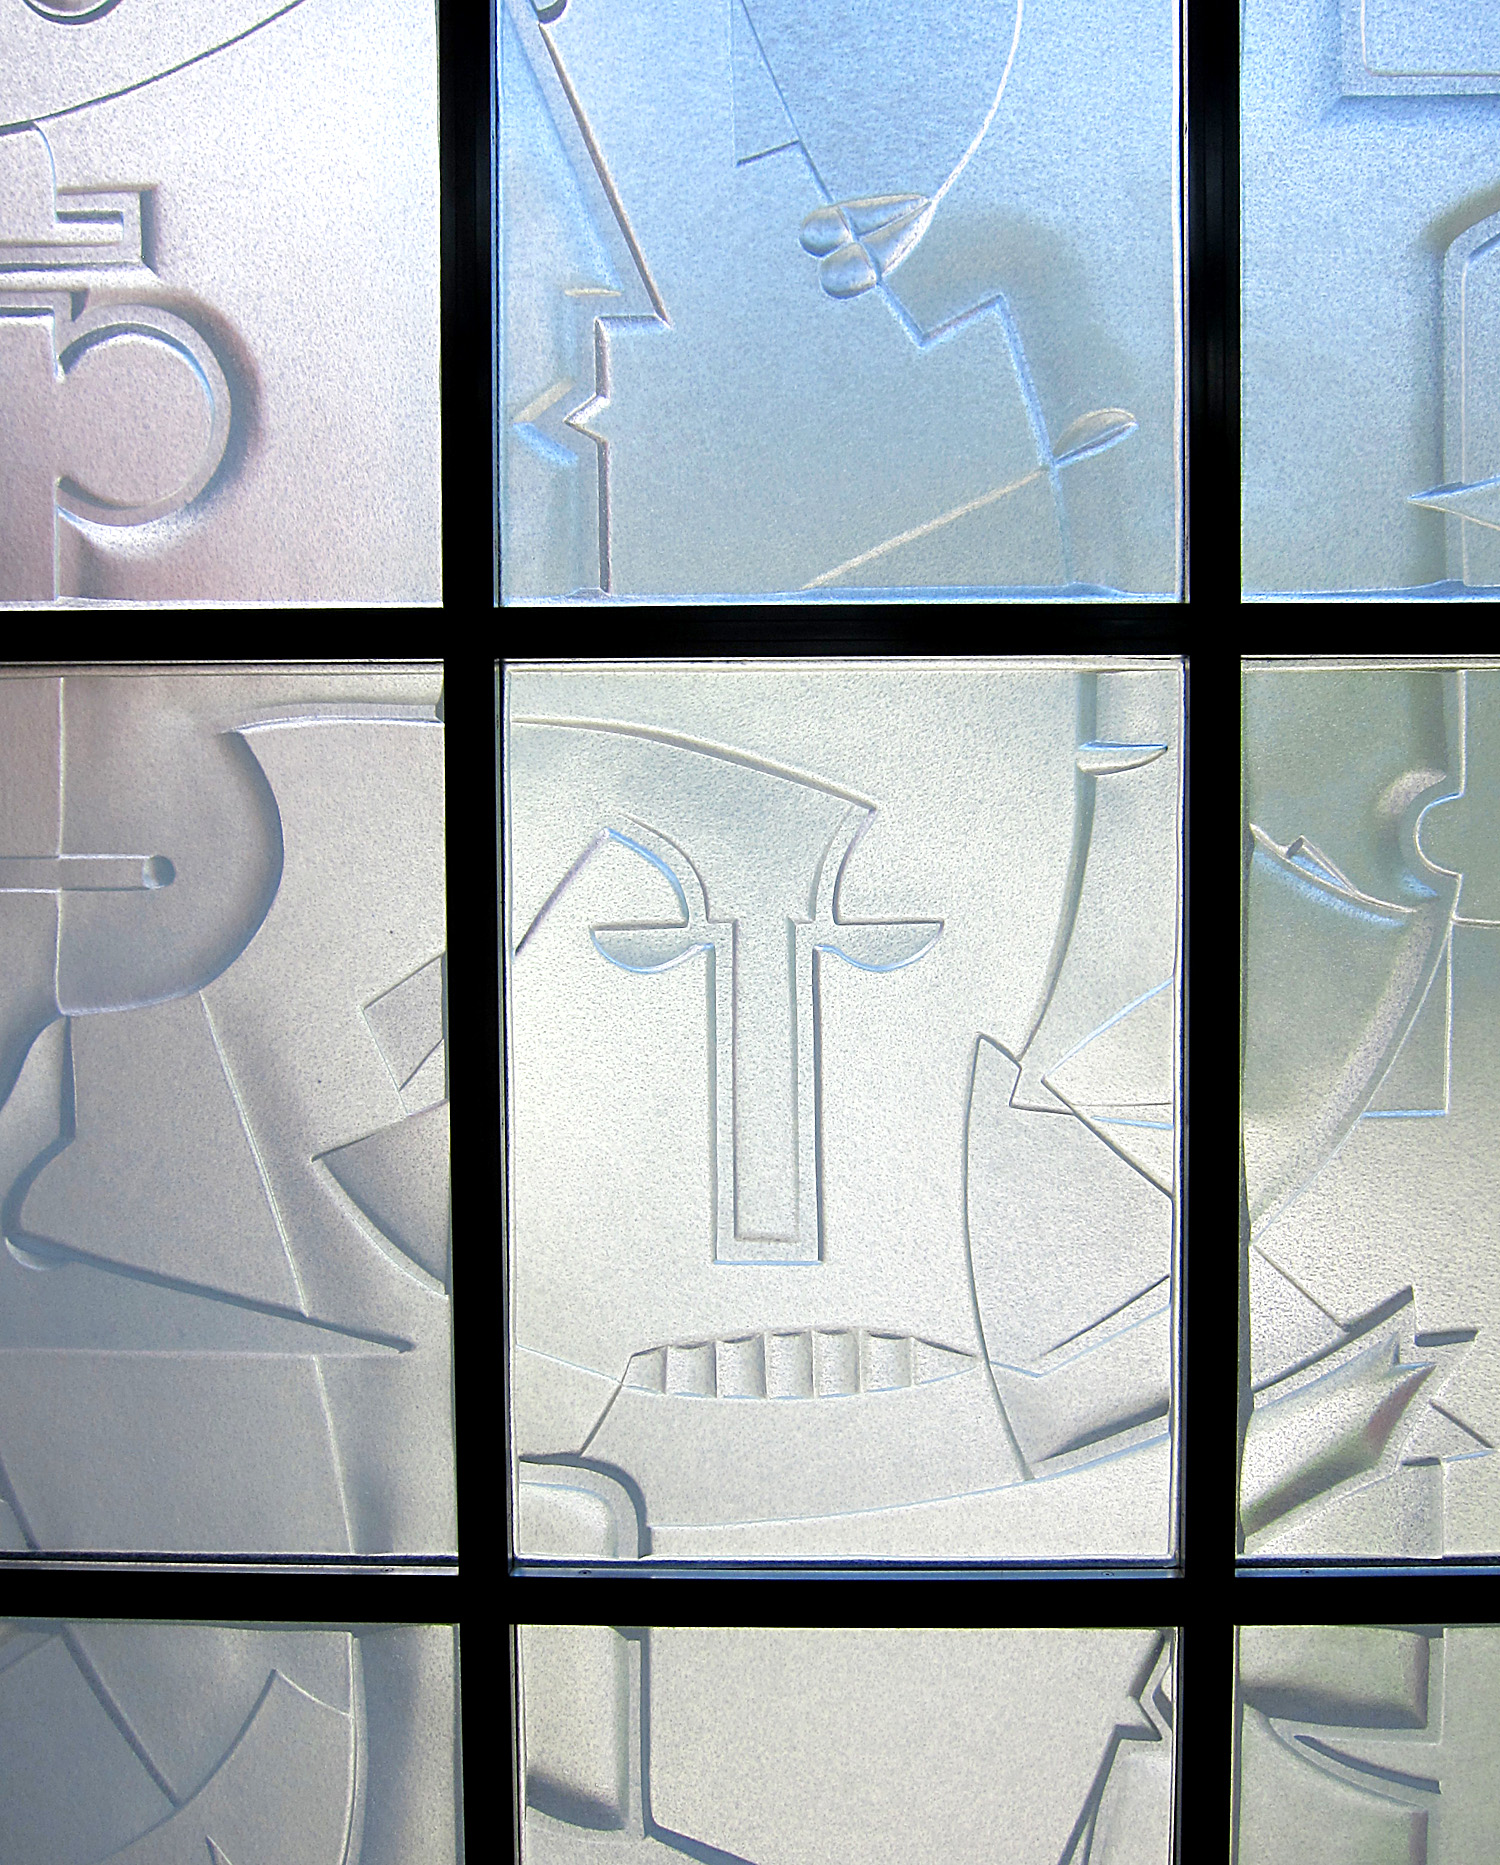 """Neighbors   2012. Cast glass, stainless steel. 120 x 84""""  Private residence, Hingham, MA"""